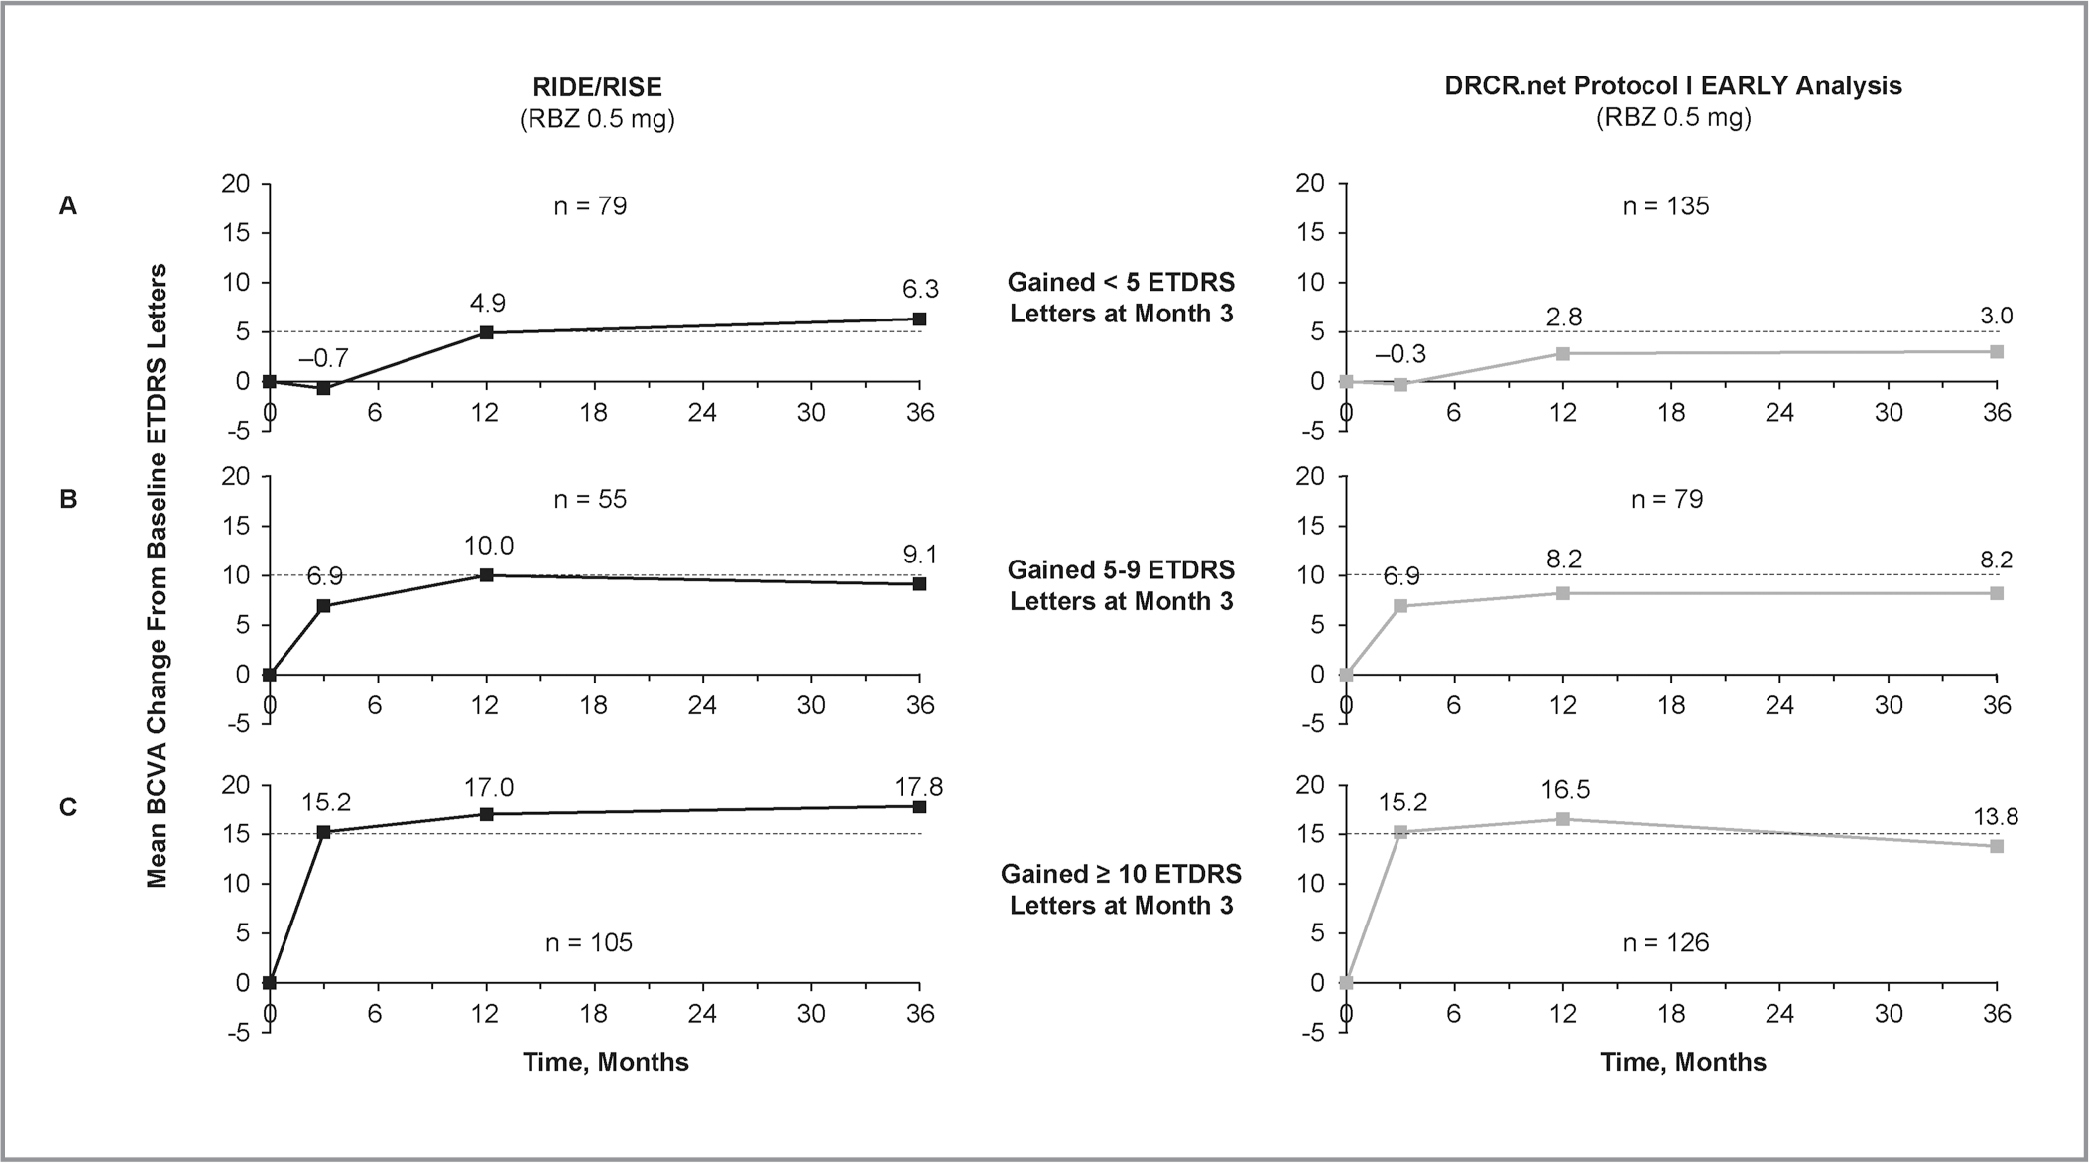 Mean best-corrected visual acuity (BCVA) change over 36 months in patients treated with ranibizumab (RBZ) 0.5 mg in RIDE/RISE (left panels) and RBZ 0.5 mg in Protocol I (right panels) who (A) gained < 5 Early Treatment Diabetic Retinopathy Study (ETDRS) letters from baseline at Month 3; (B) gained 5 to 9 ETDRS letters from baseline at Month 3; and (C) gained ≥ 10 ETDRS letters from baseline at Month 3. RIDE/RISE observed data; sample size varied over time. DRCR.net = Diabetic Retinopathy Clinical Research Network.